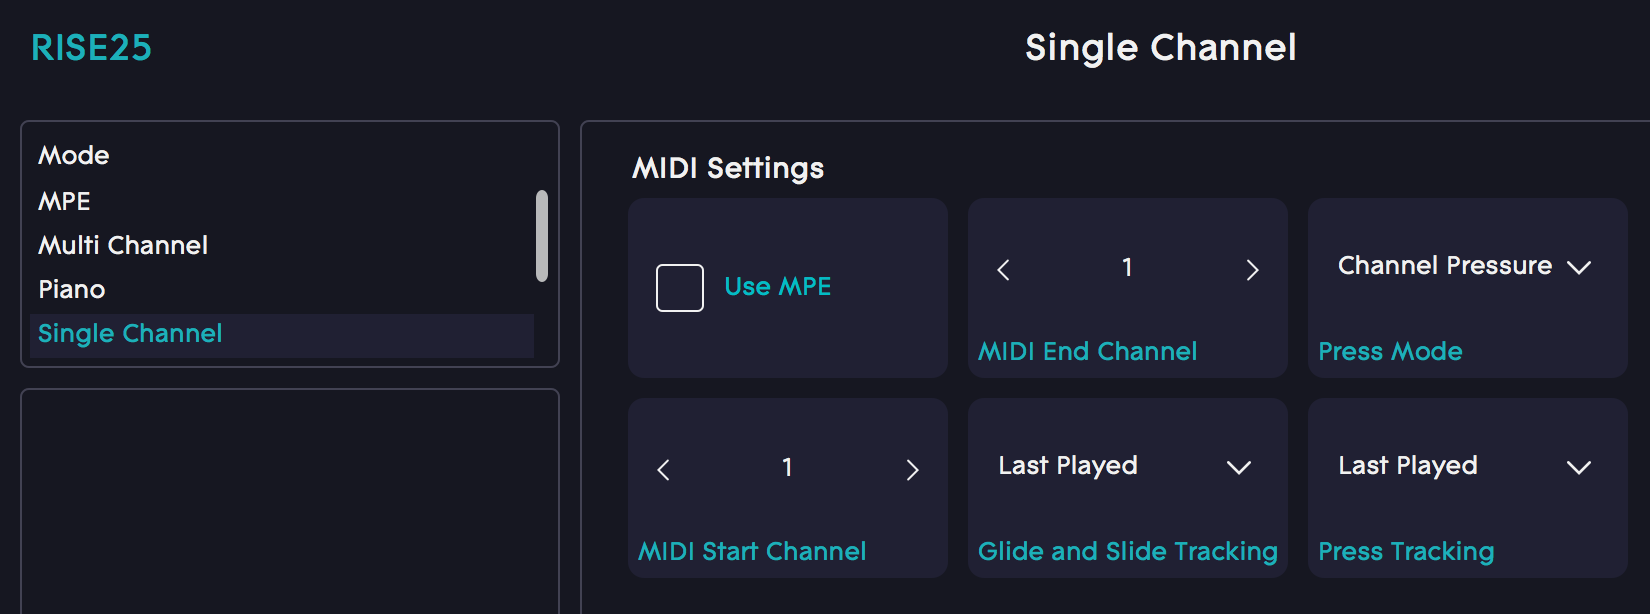 Dashboard single channel mode